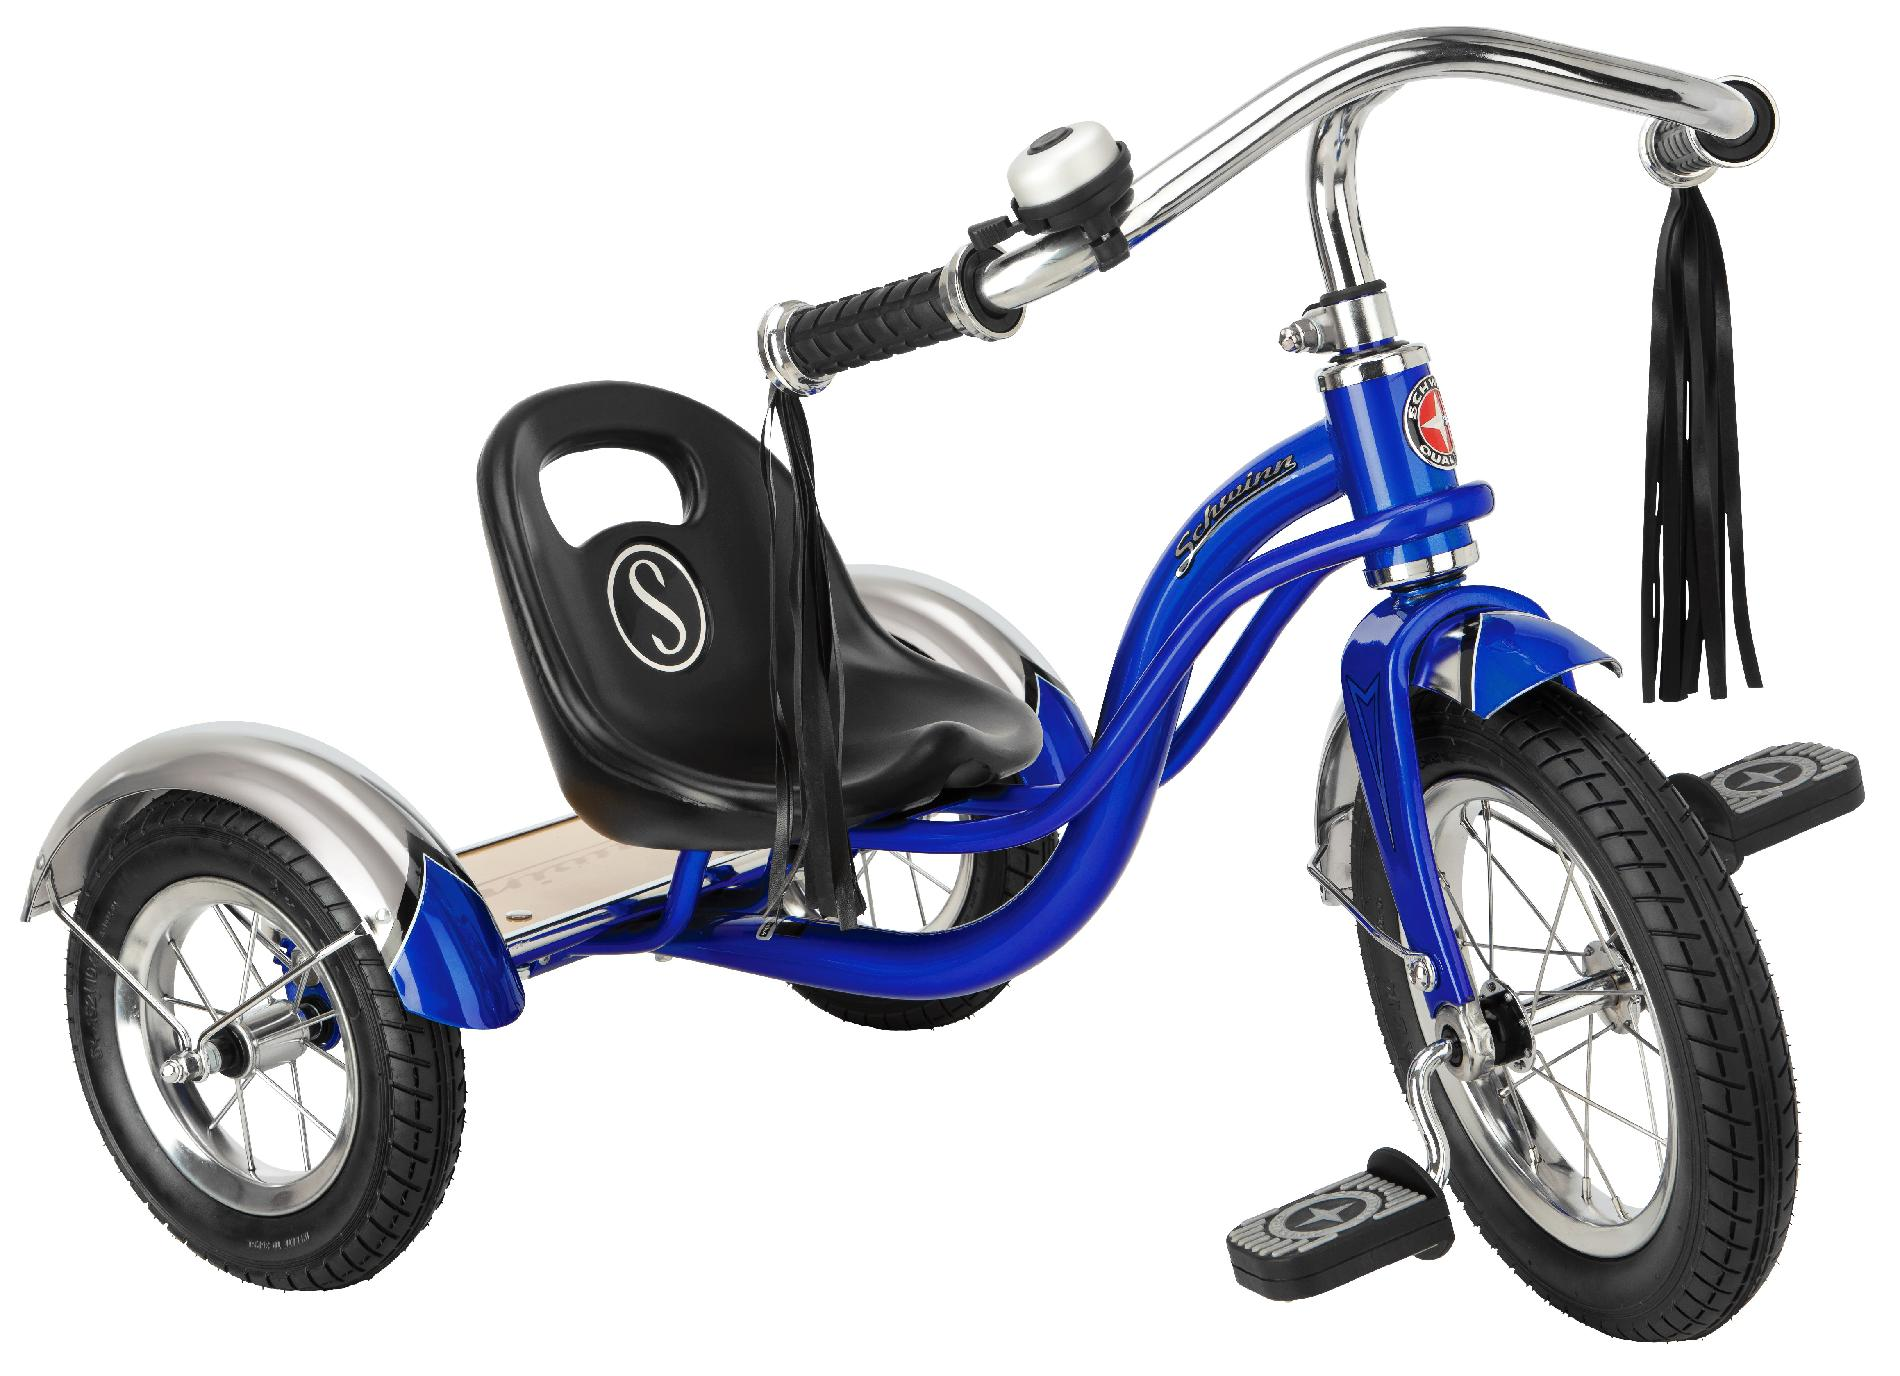 Schwinn Roadster 12 Tricycle